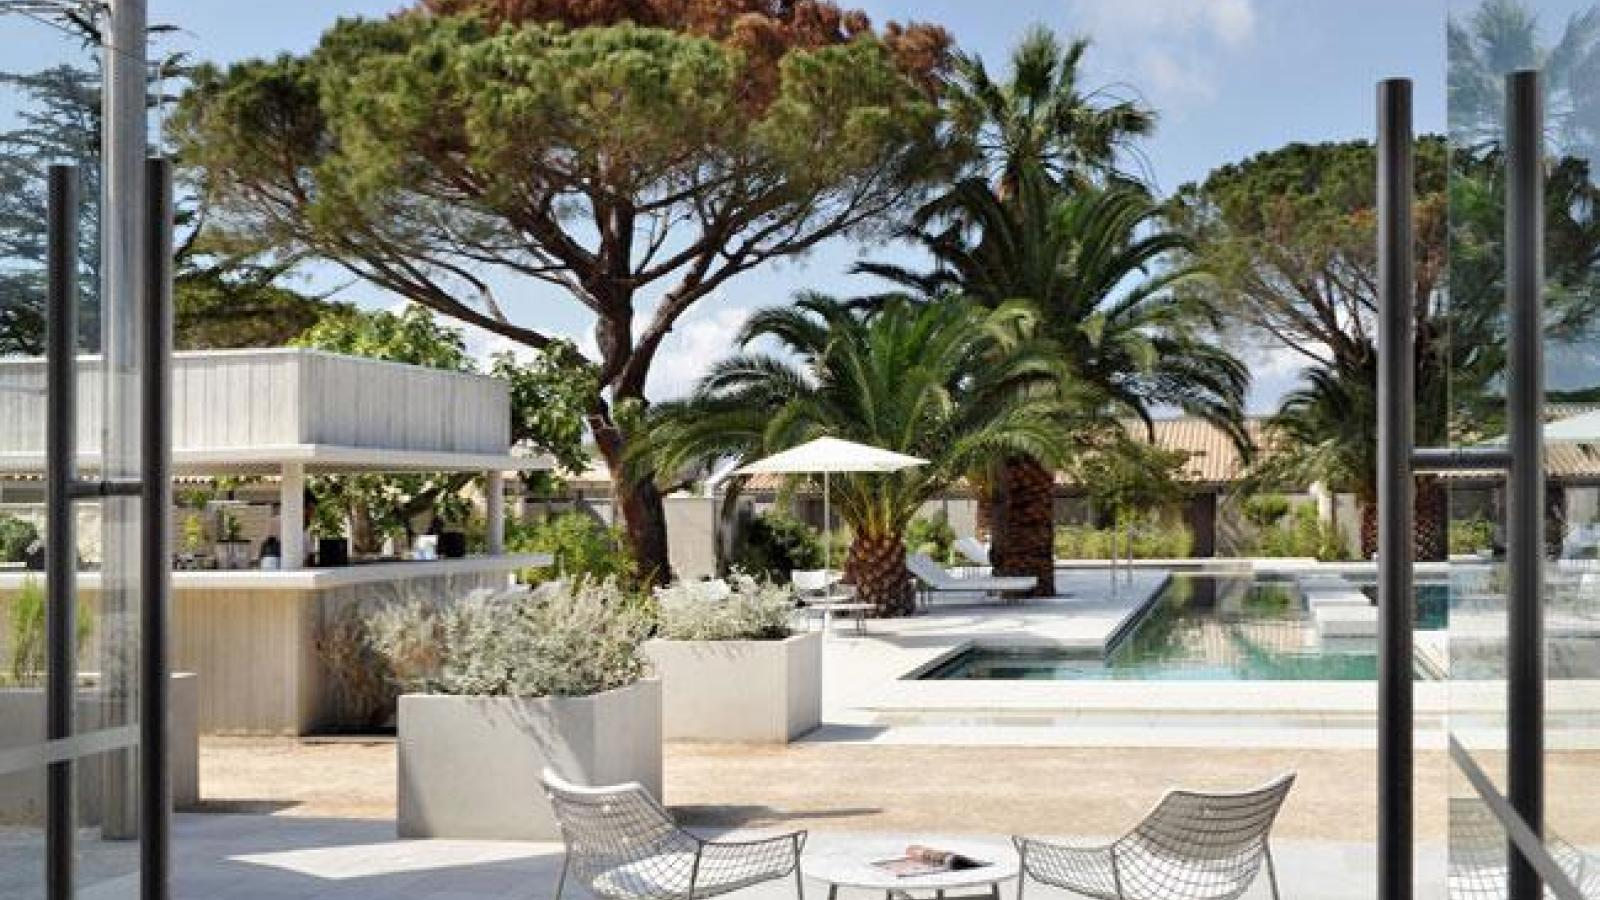 Hotel Sezz Saint Tropez re-opening: plenitude and delight